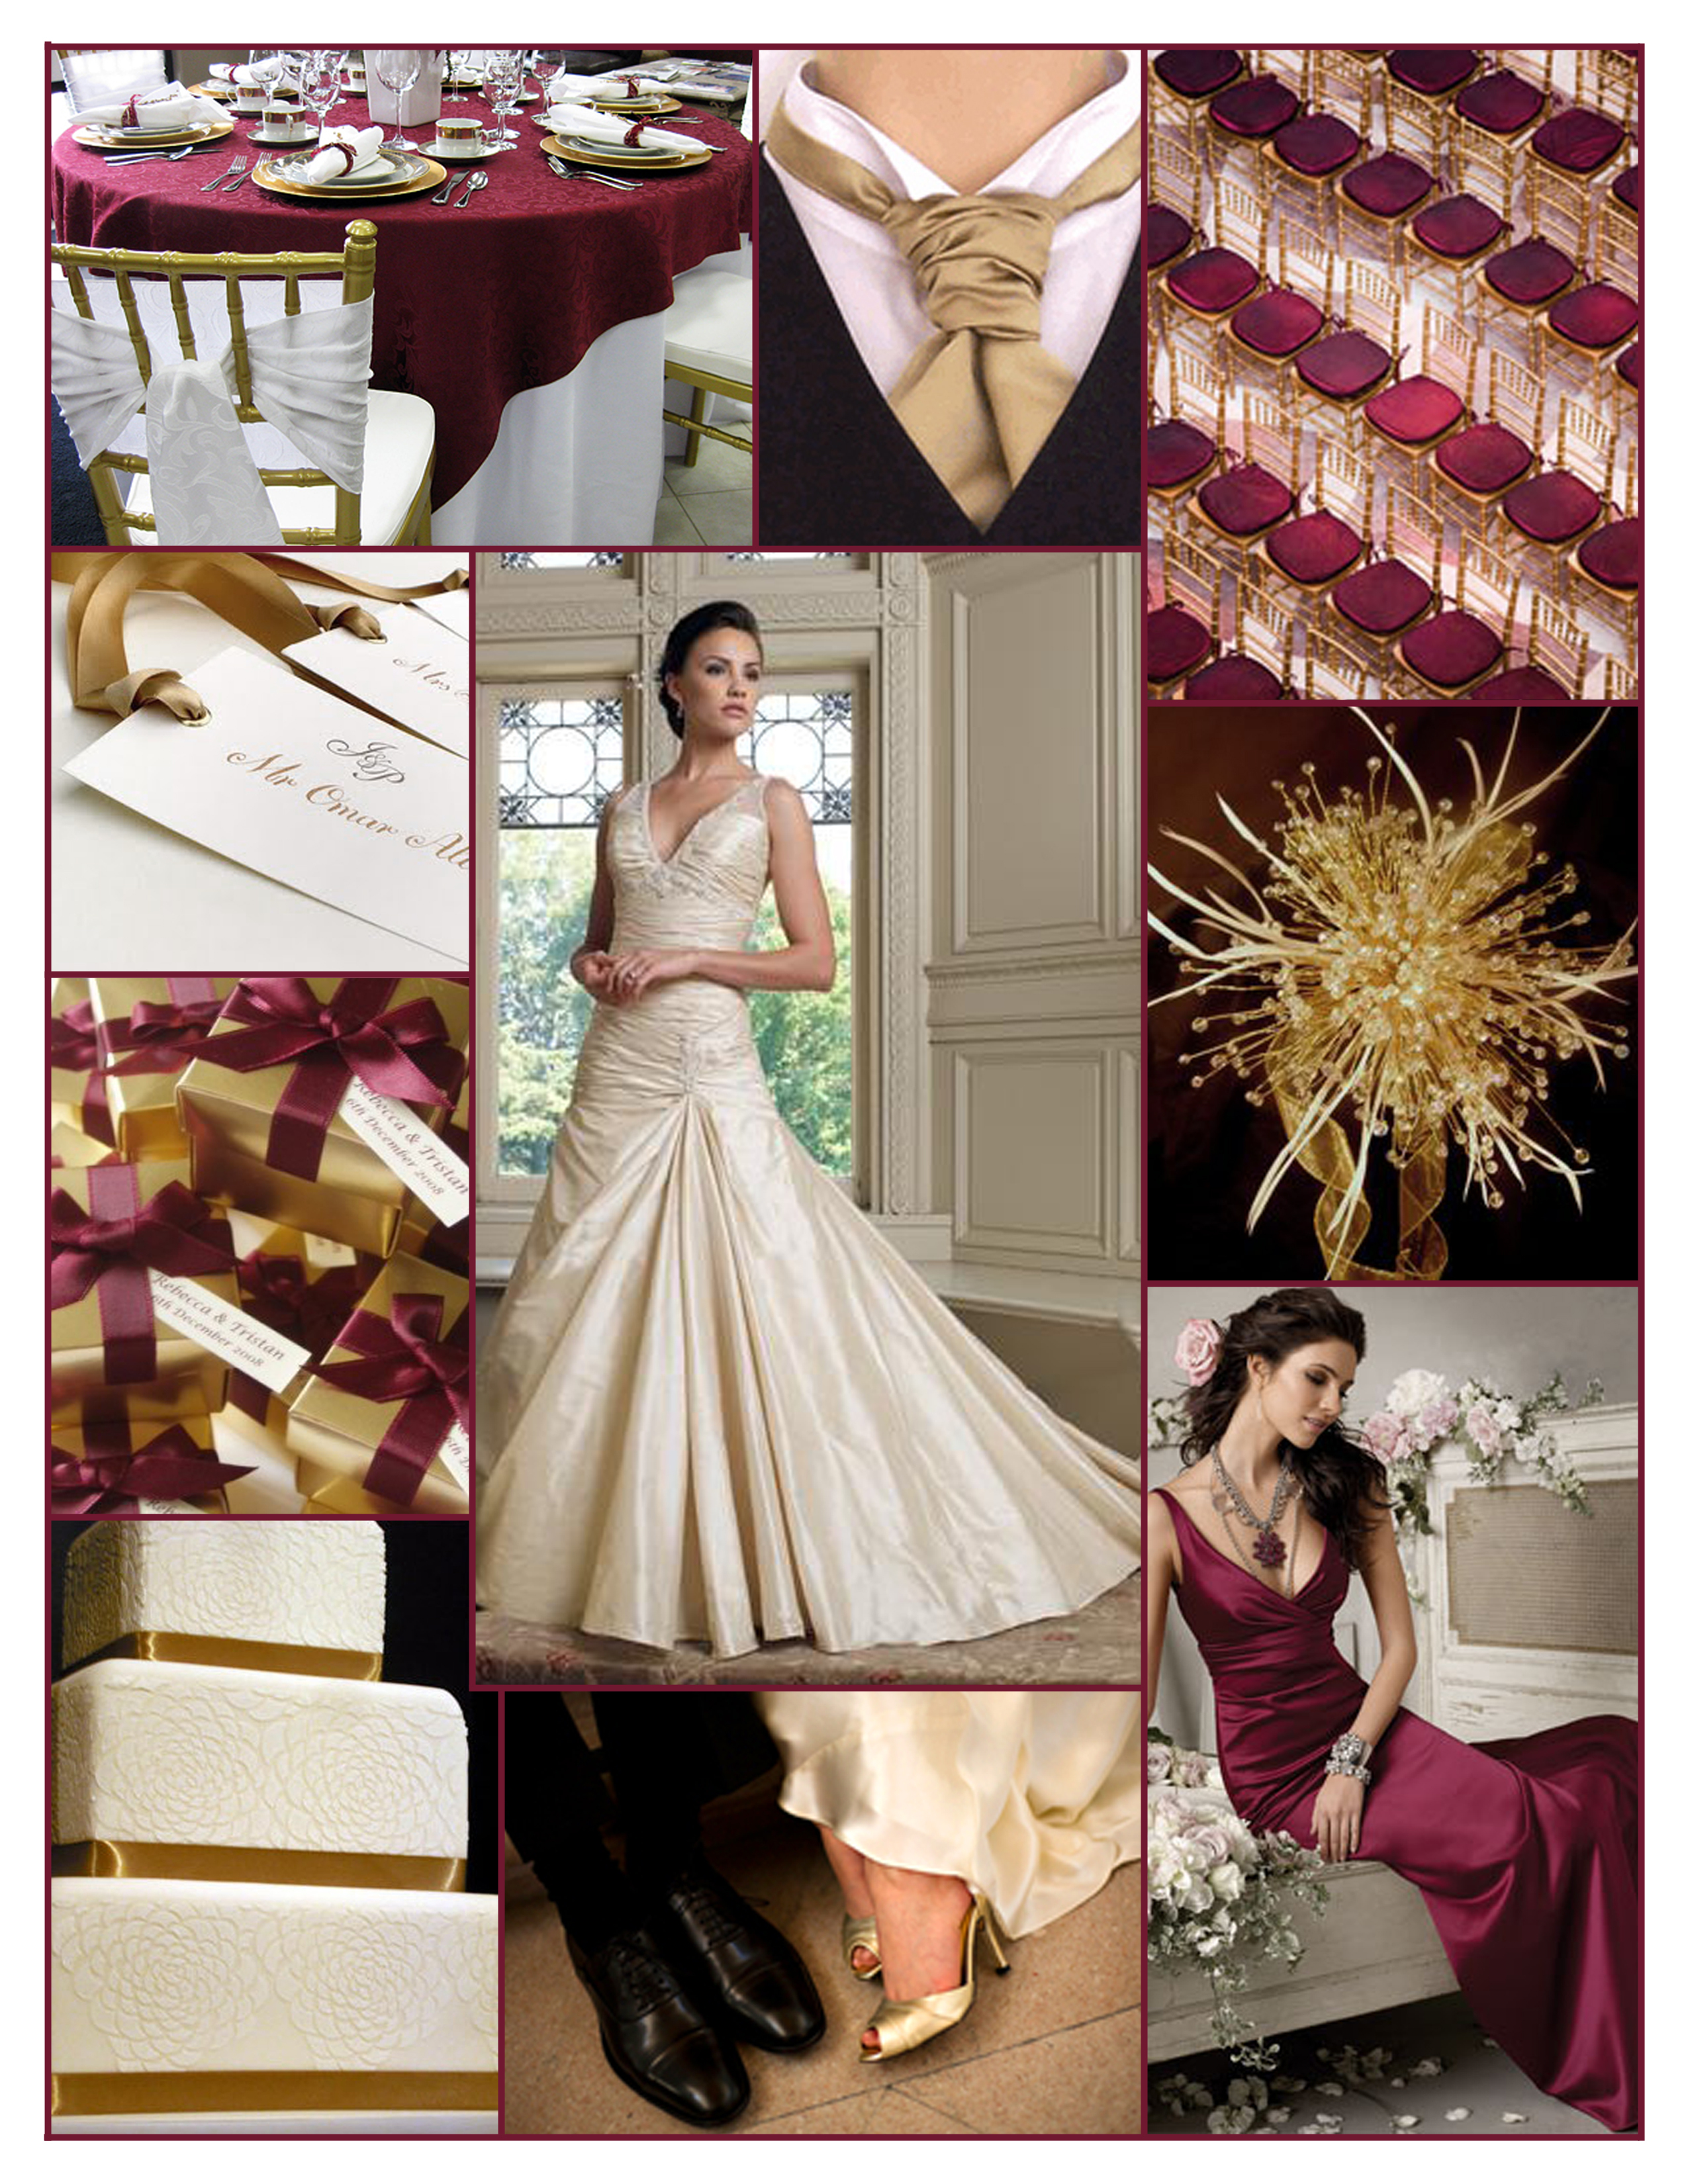 Ceremony, Inspiration, Reception, Flowers & Decor, Bridesmaids, Bridesmaids Dresses, Wedding Dresses, Cakes, Fashion, white, red, burgundy, gold, cake, dress, Winter, Board, Holiday, Christmas, Jim hjelm occasions, Mon cheri, winter wedding dresses